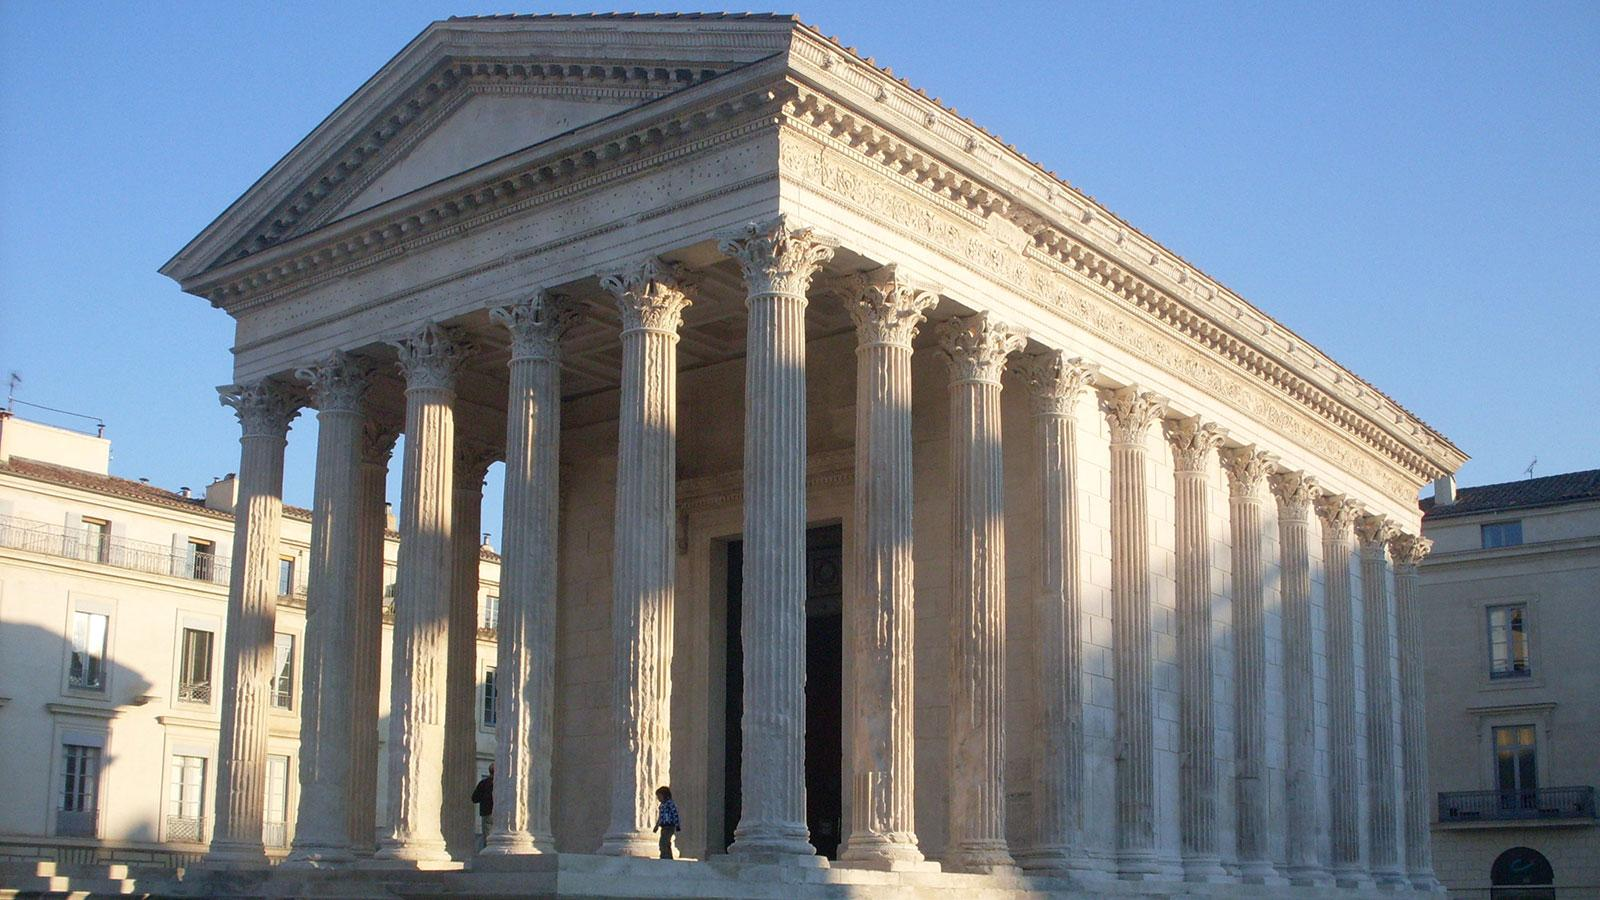 the maison carre an ancient roman temple in nimes france inspired thomas jeffersons design of the virginia state capitol photo credit public domain - Roman Design Architecture